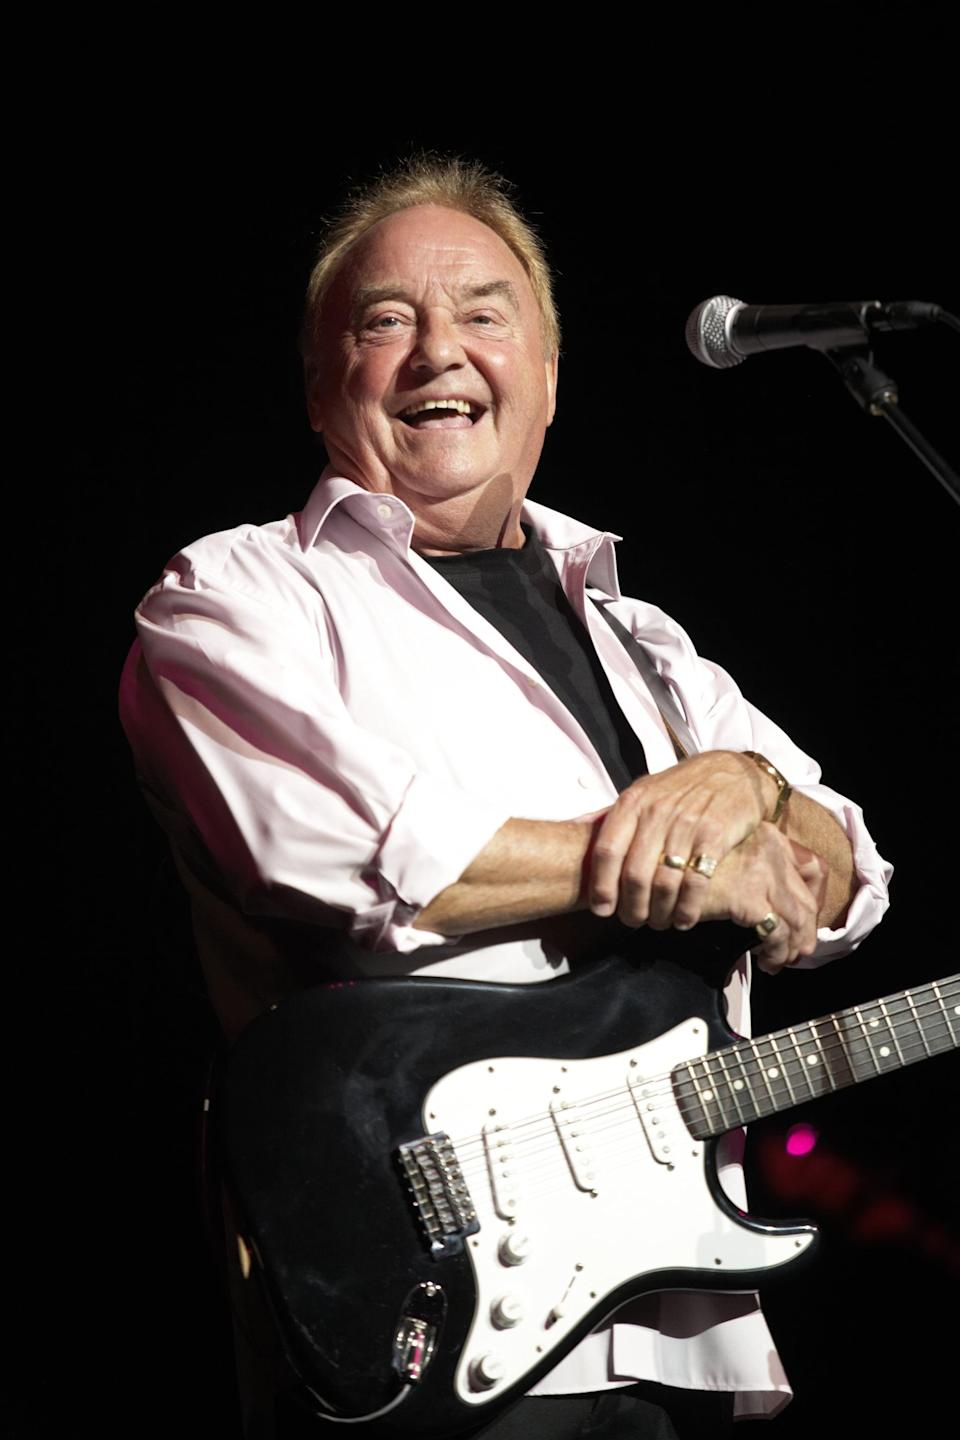 """<p>The lead singer of Gerry and the Pacemakers died in January at age 78. Marsden's friend <a href=""""http://twitter.com/PeteCityPrice/status/1345772387057467394"""" class=""""link rapid-noclick-resp"""" rel=""""nofollow noopener"""" target=""""_blank"""" data-ylk=""""slk:Pete Price announced his death"""">Pete Price announced his death</a> on Twitter, writing, """"It's with a very heavy heart after speaking to the family that I have to tell you the Legendary Gerry Marsden MBE after a short illness which was an infection in his heart has sadly passed away."""" </p>"""